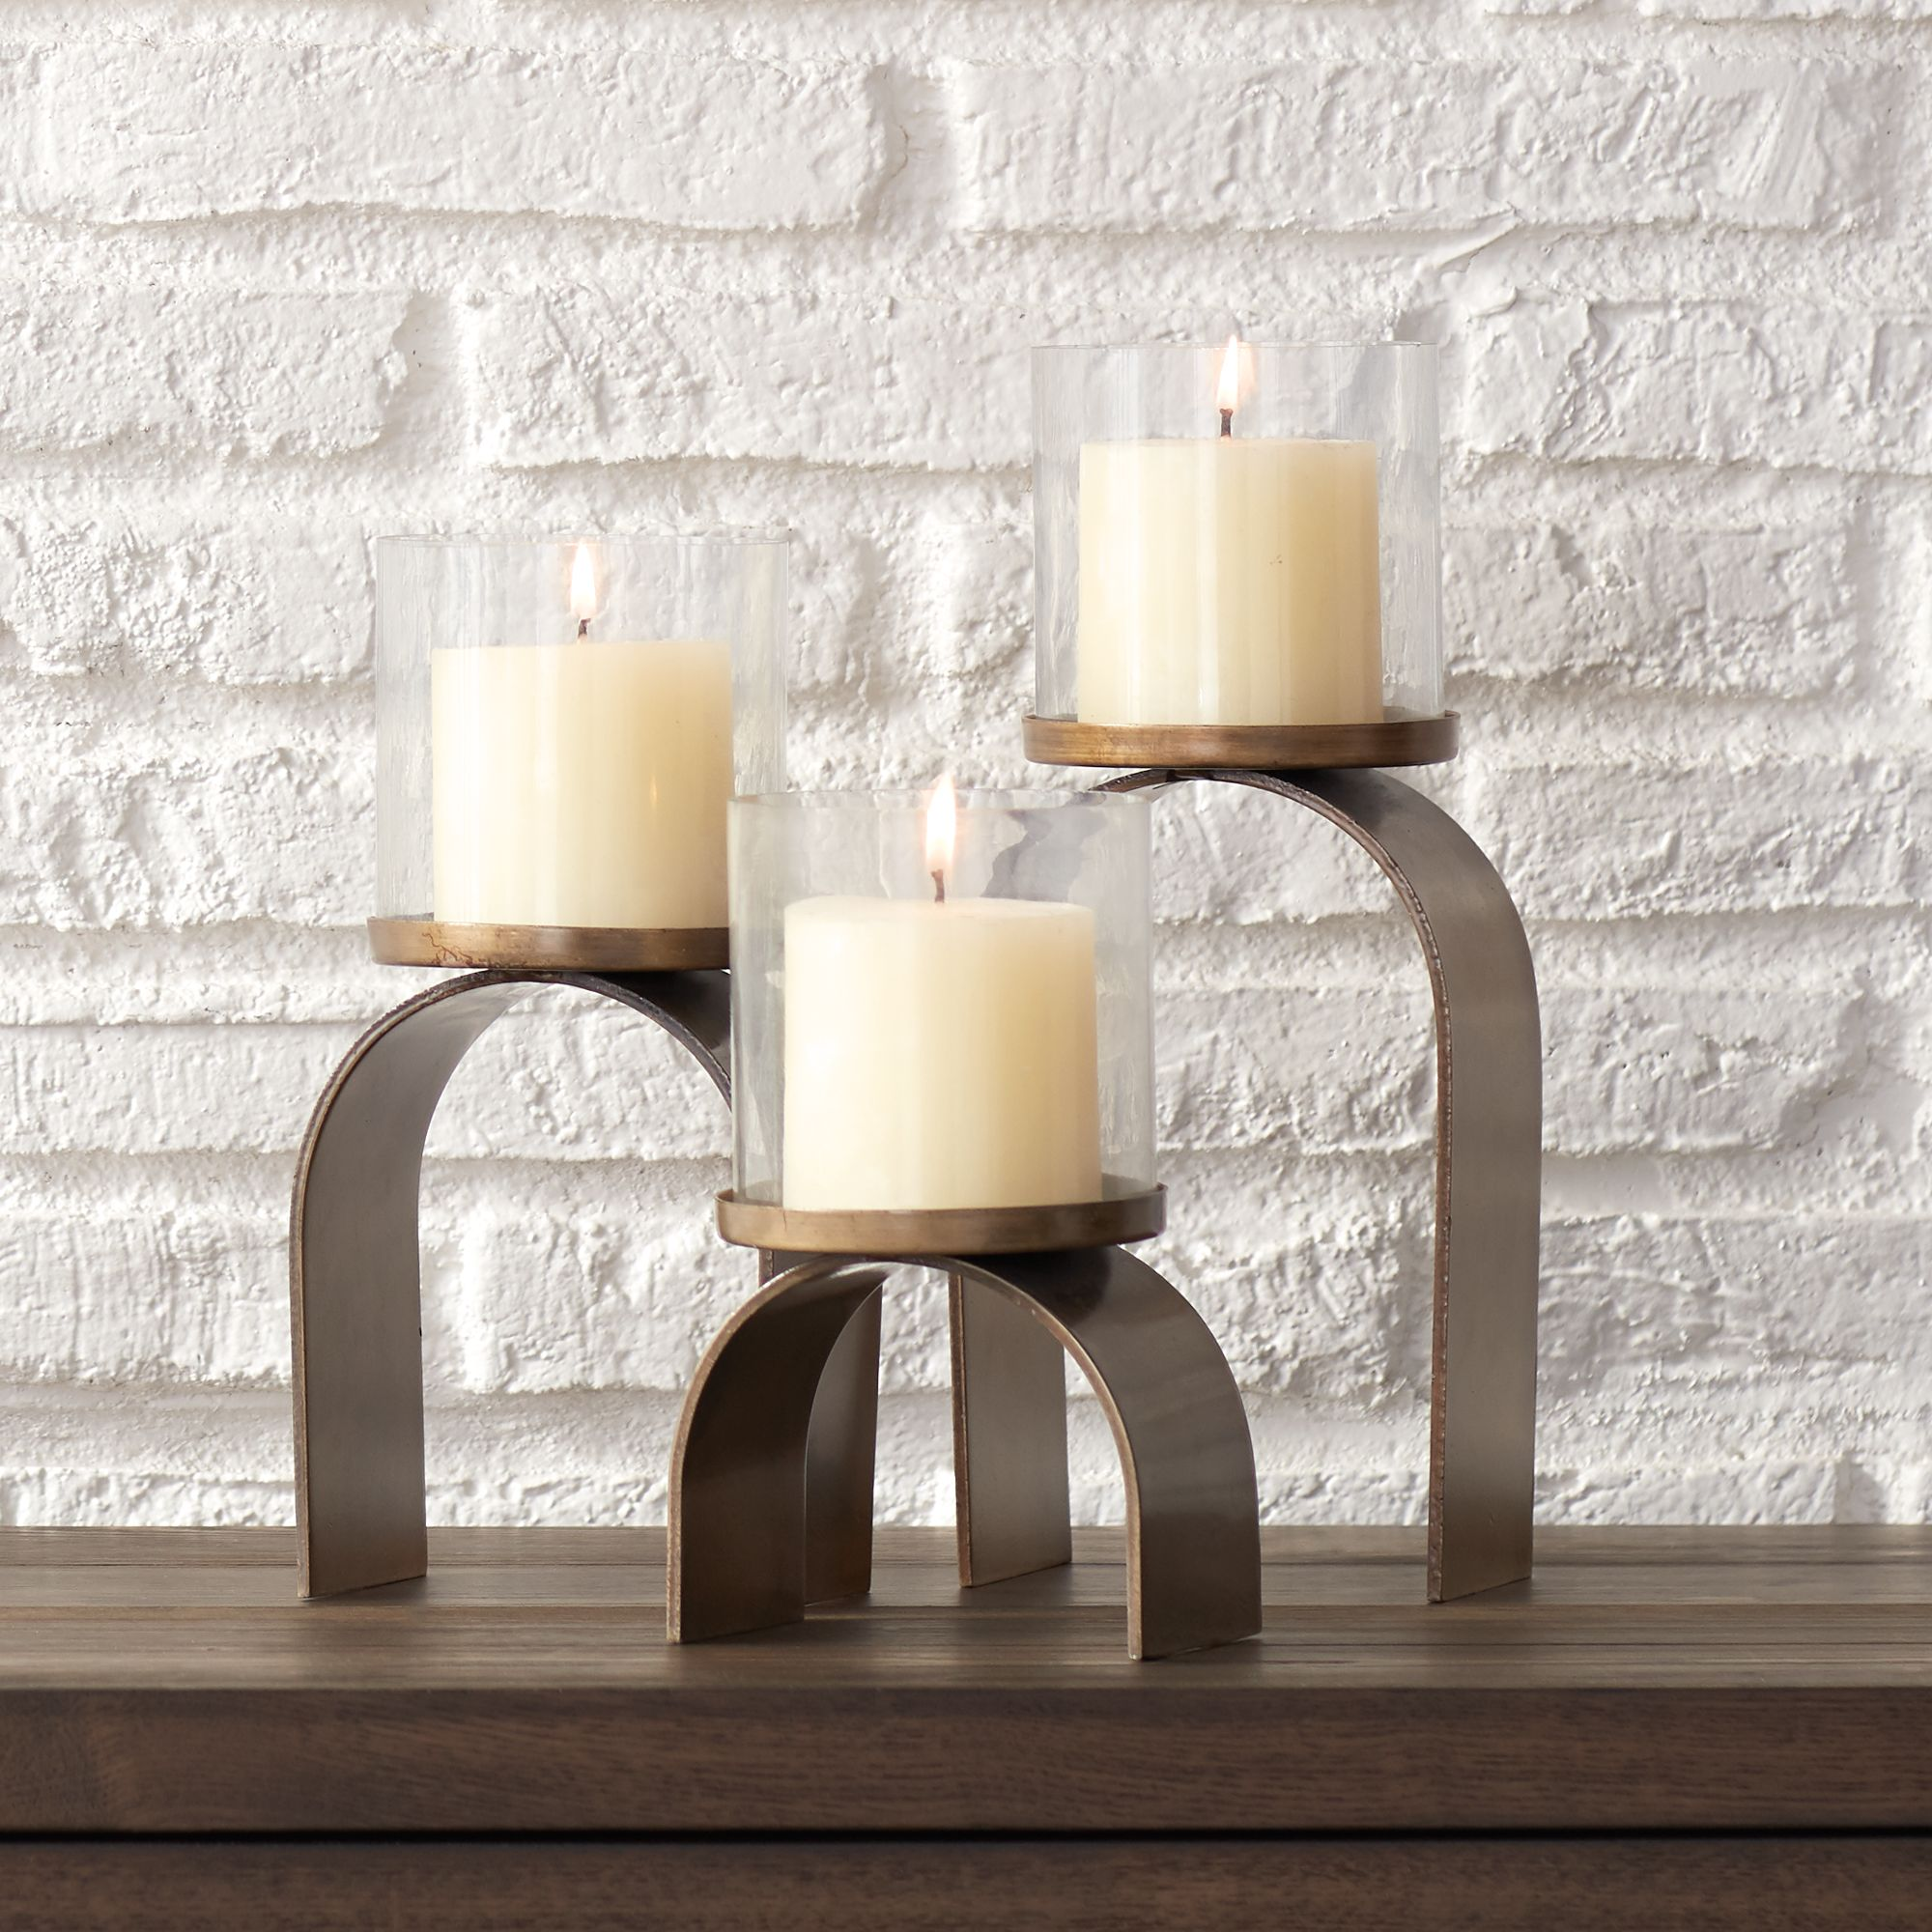 Candle Holders Decorative Table Candleholders Lamps Plus